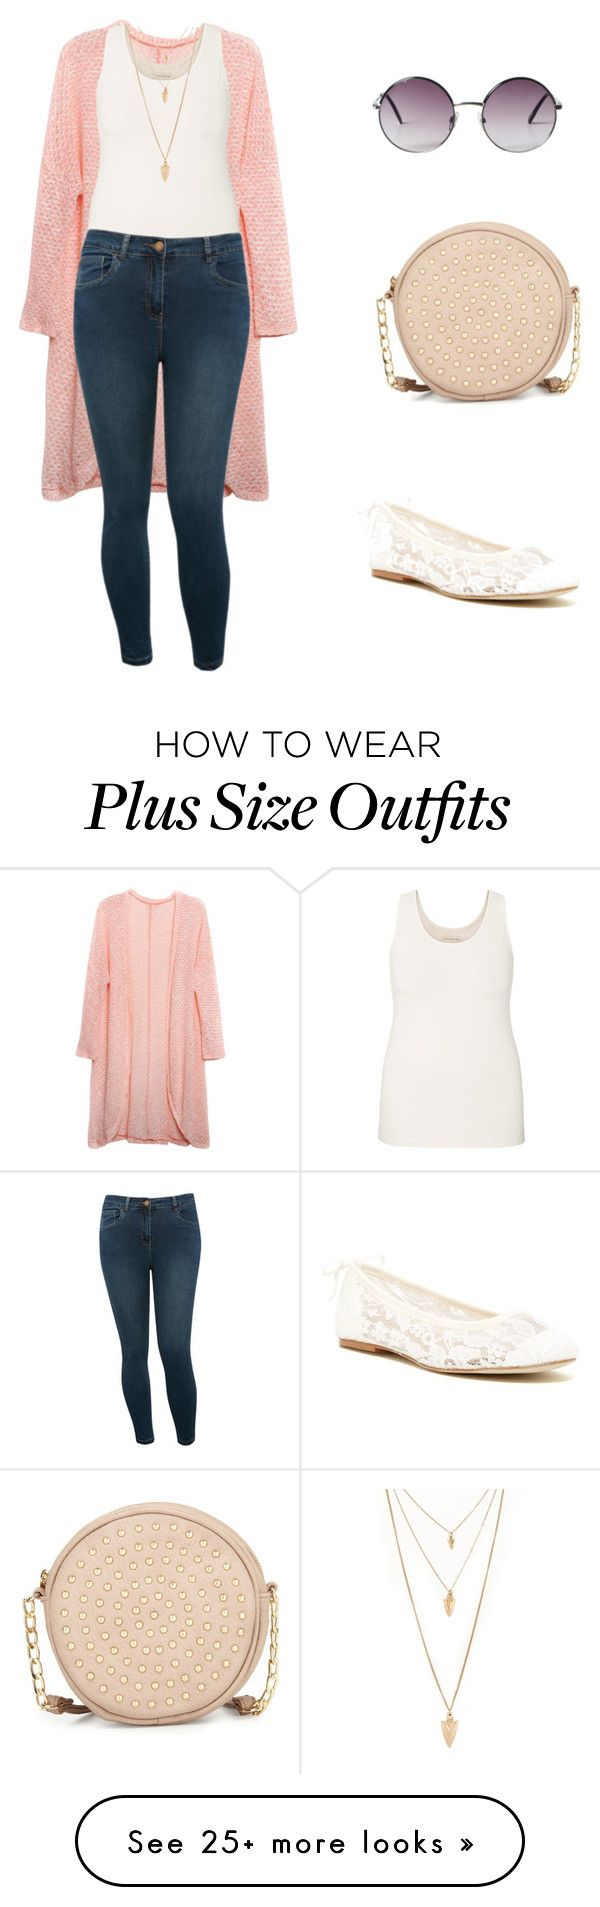 """""""Plus size casual wear"""" by naijareyes on Polyvore featuring Relaxfeel, maurices, M&Co, Soludos, Monki, Forever 21 and Neiman Marcus"""